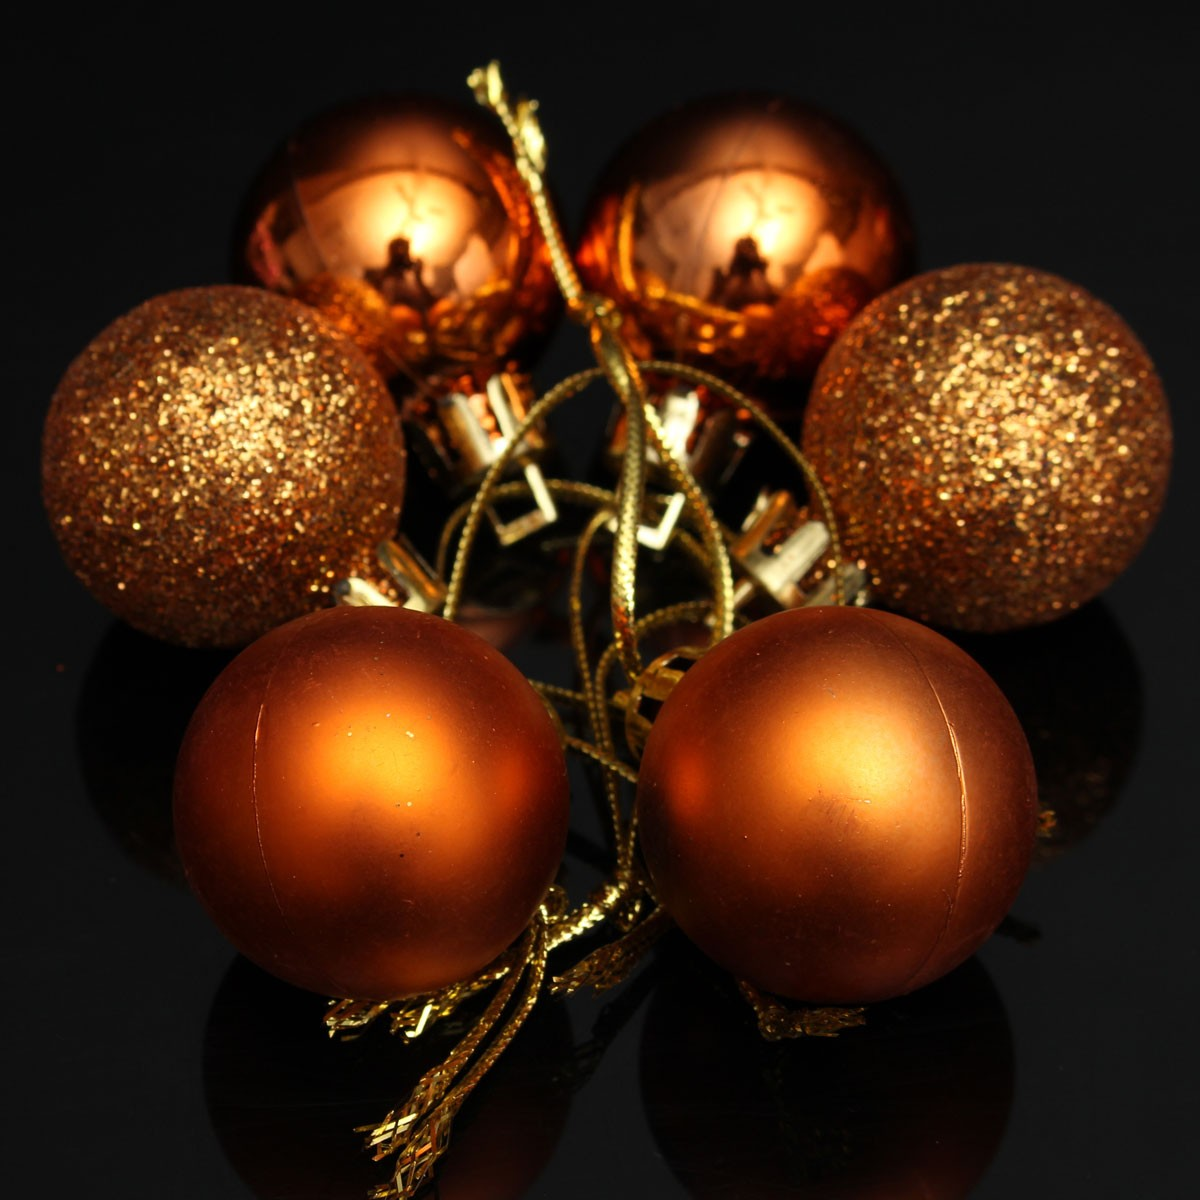 Decorating Christmas Balls With Glitter : Pcs glitter christmas balls baubles xmas tree hanging